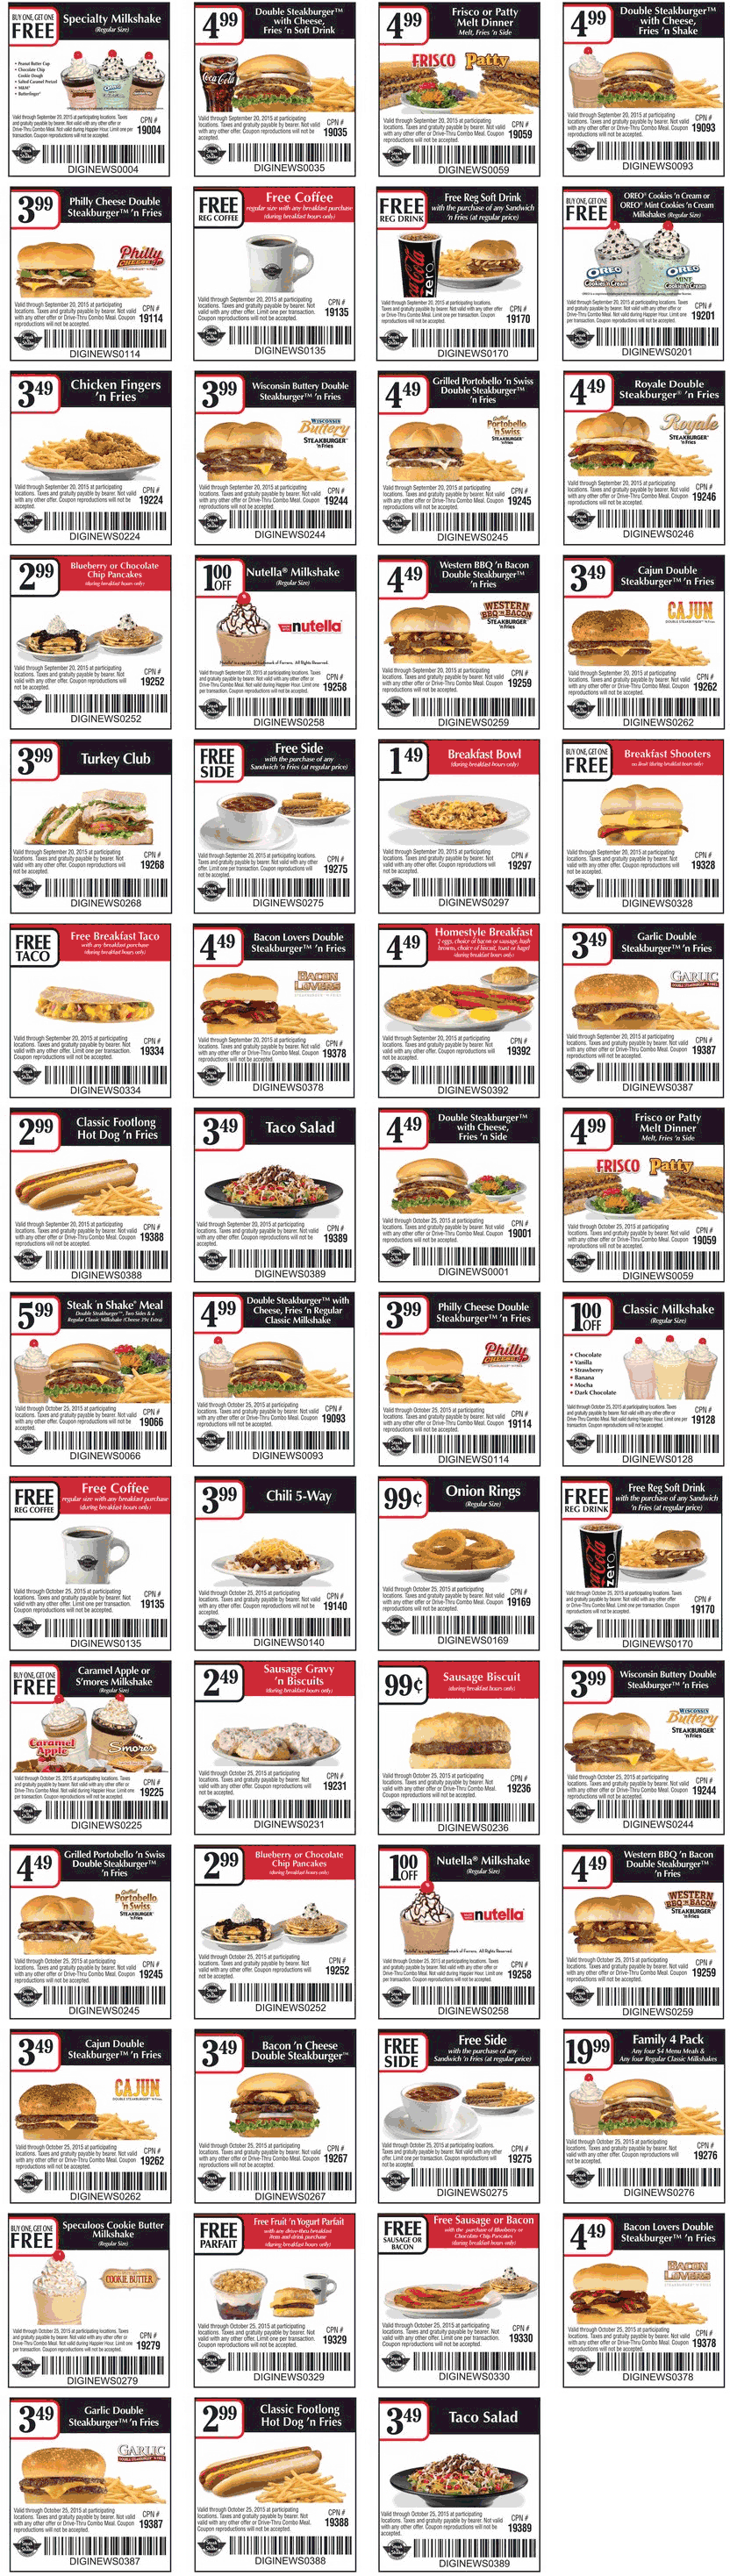 Steak n Shake Coupon April 2018 Free coffee, second milkshake free & more at Steak N Shake restaurants